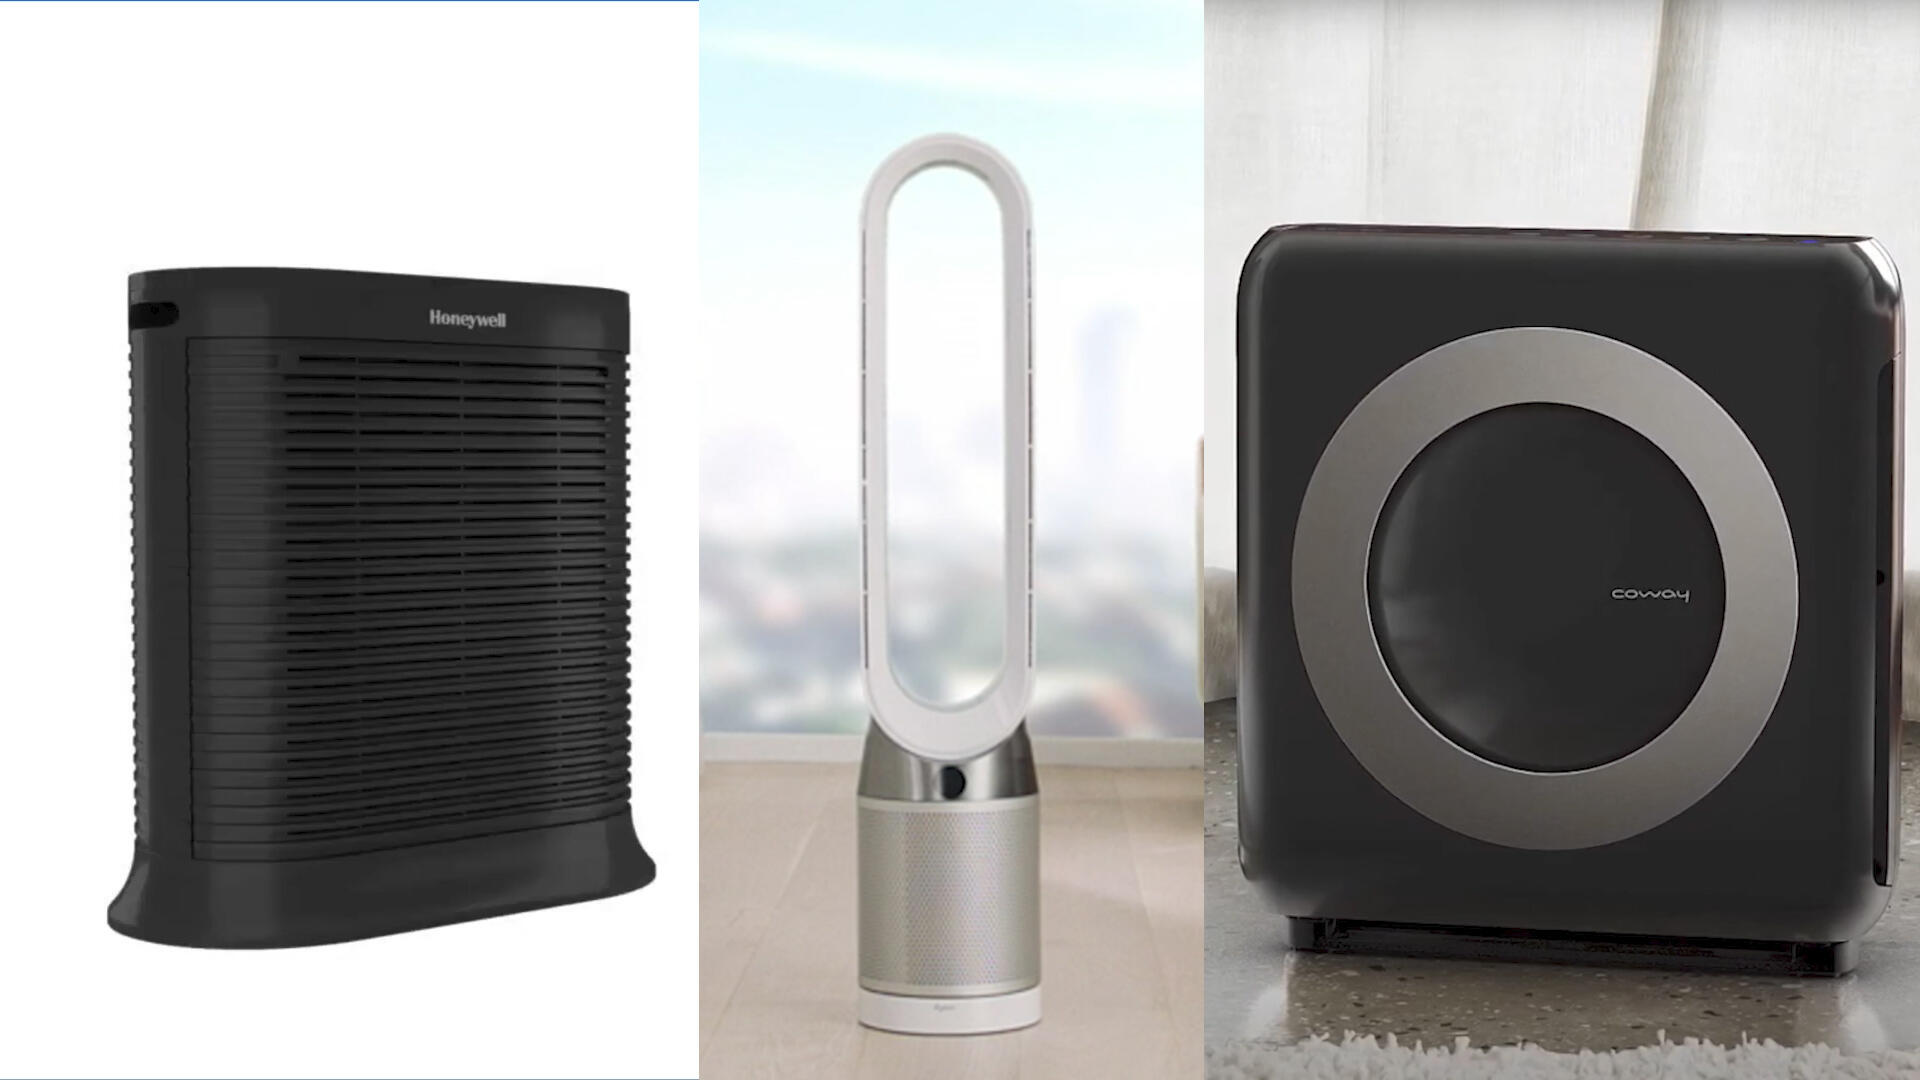 First we break down what you should know before picking up an air purifier. Then we give some of our recommendations, including products from Dyson and Honeywell.